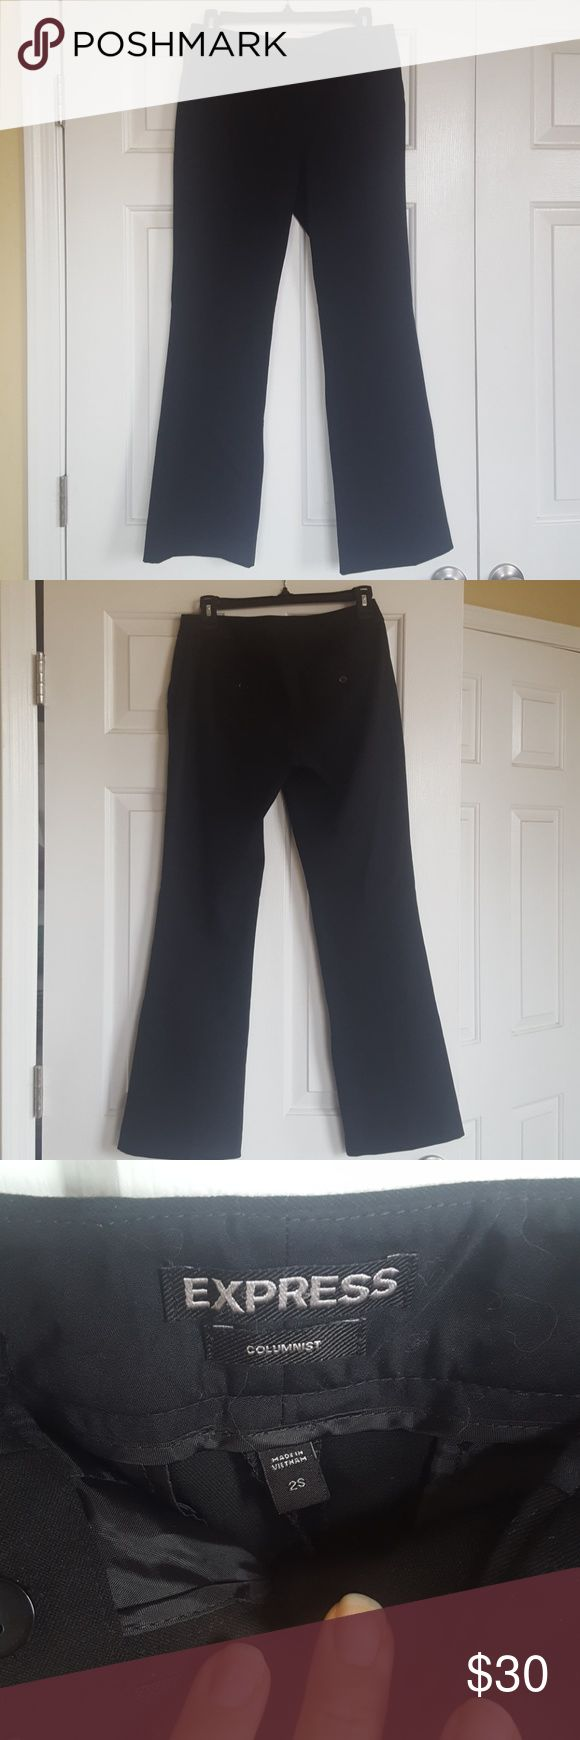 Express women's Columnist, size 2S, black slacks Great condition, never worn! Women's Express Columnist boot cut, black dress pants, Size 2S Thank you for viewing! Express Pants Trousers